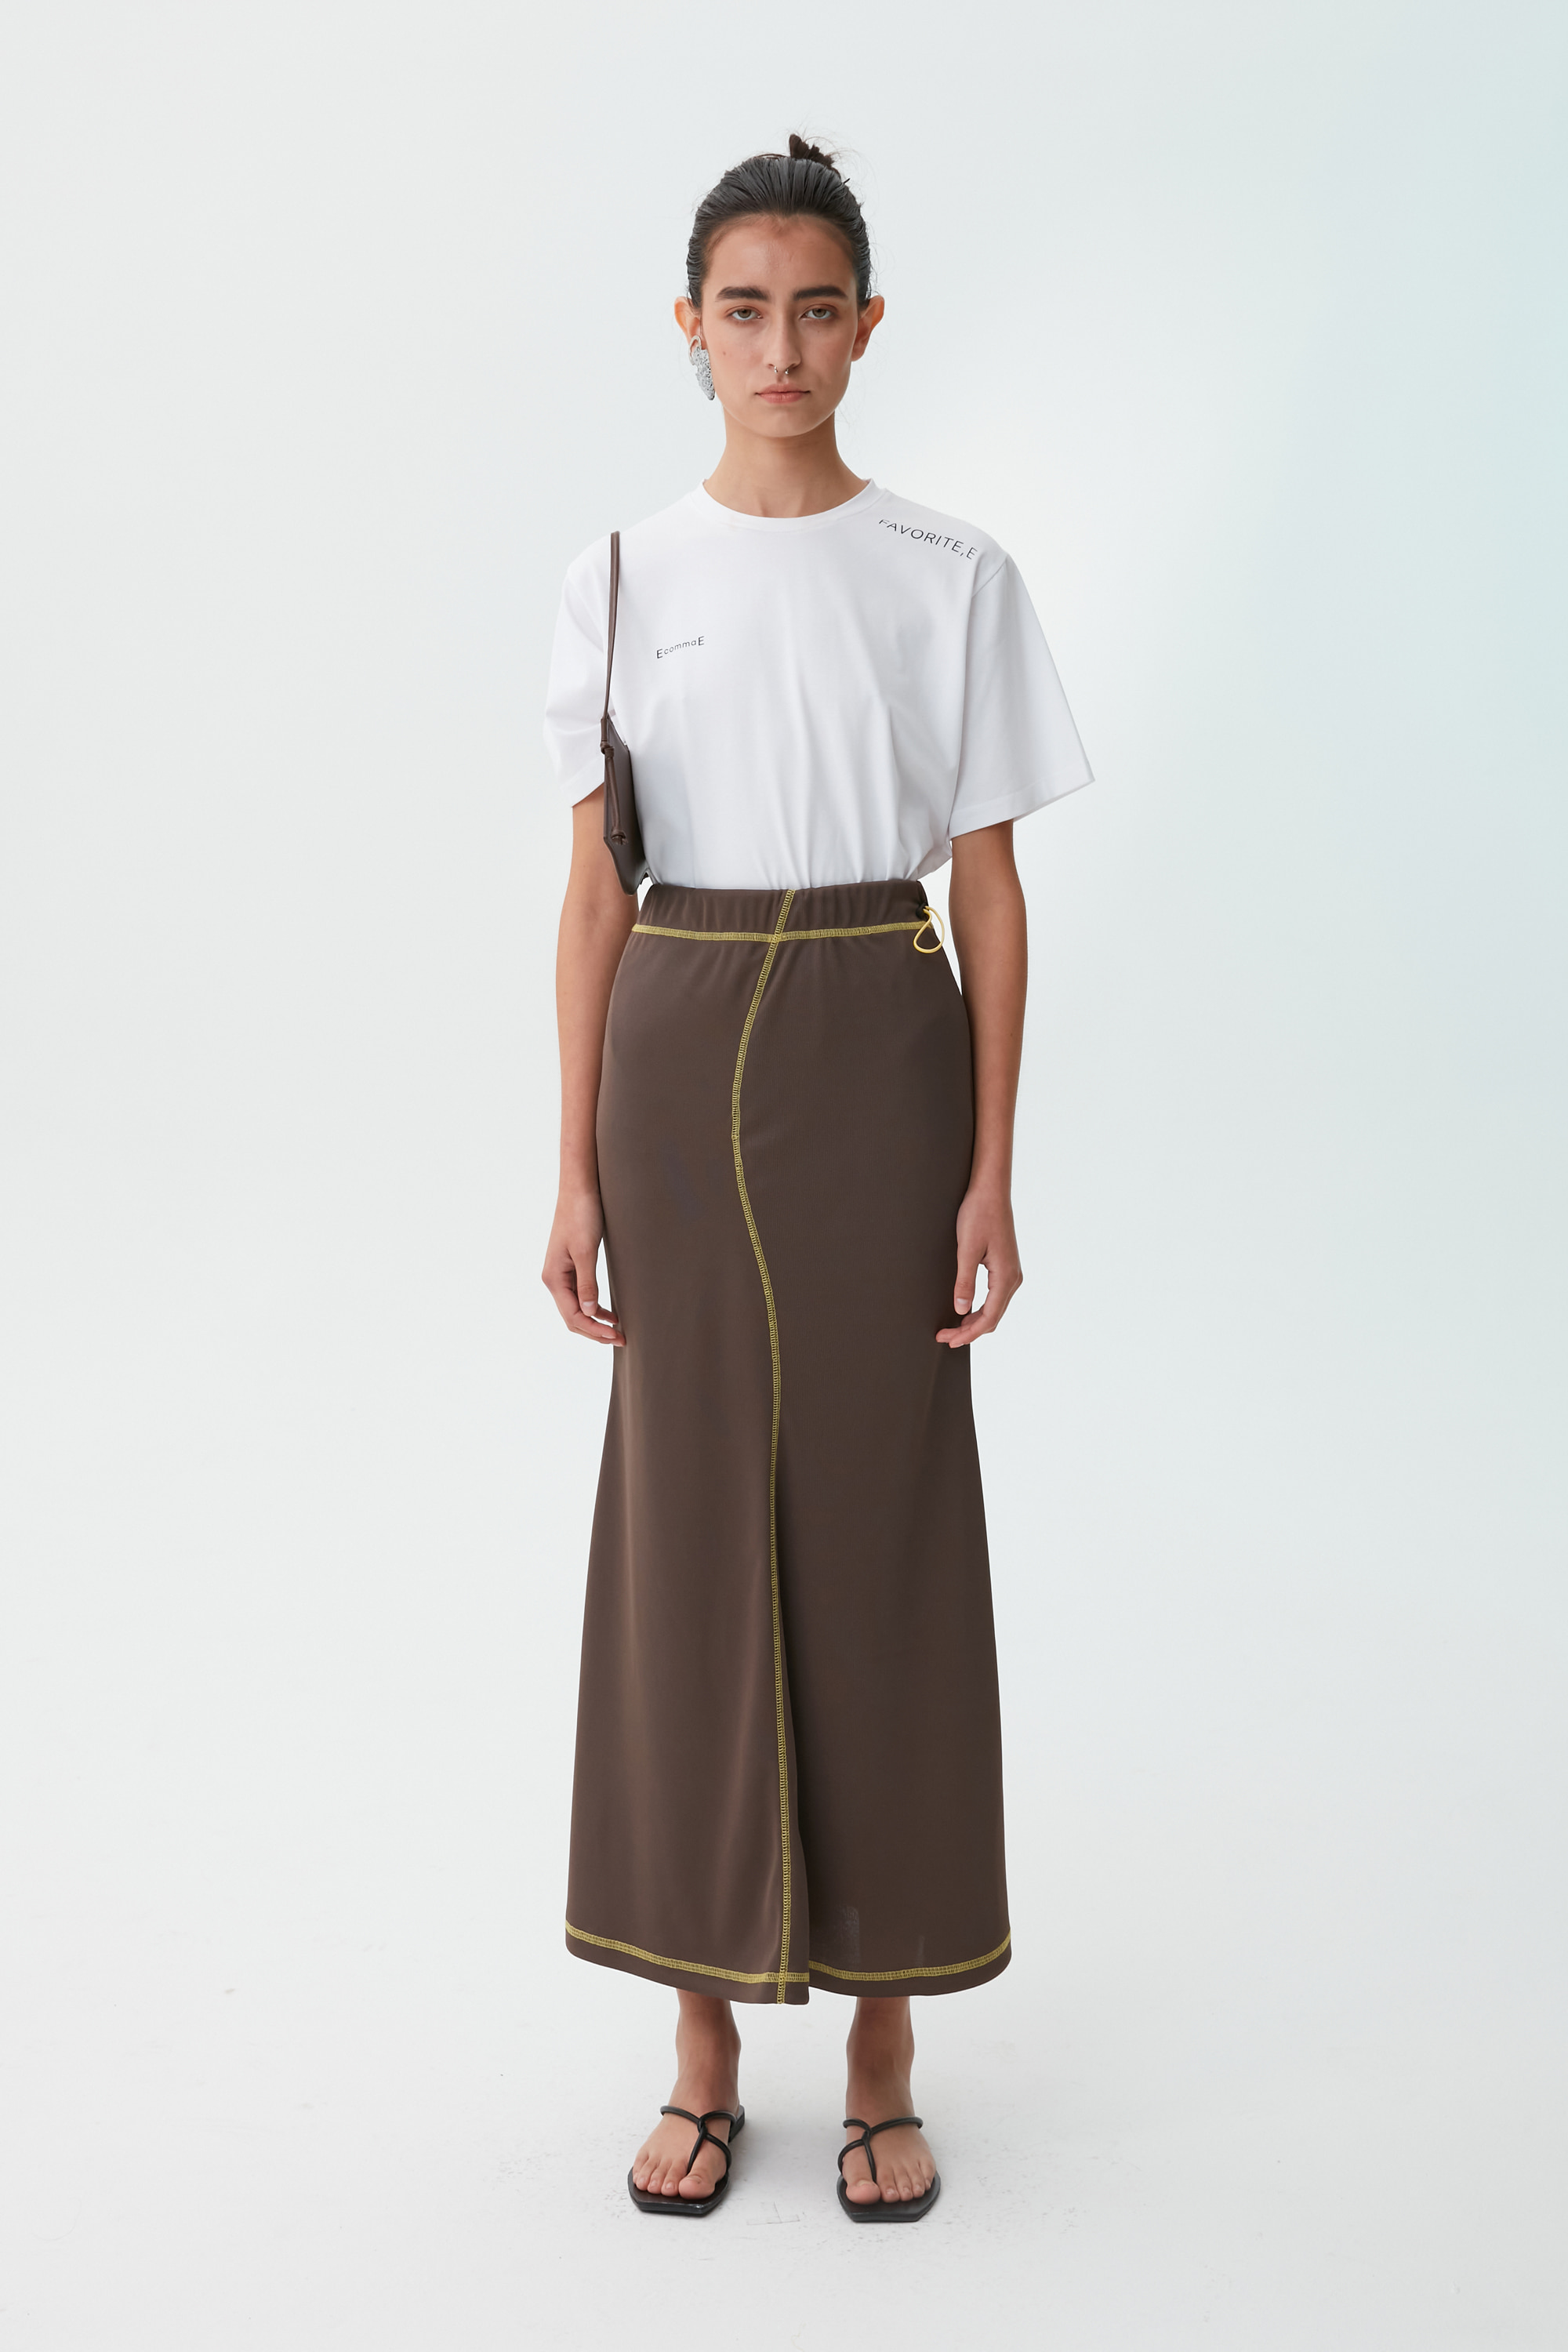 [21 SUMMER] WAVE FLARE SKIRT (BROWN)